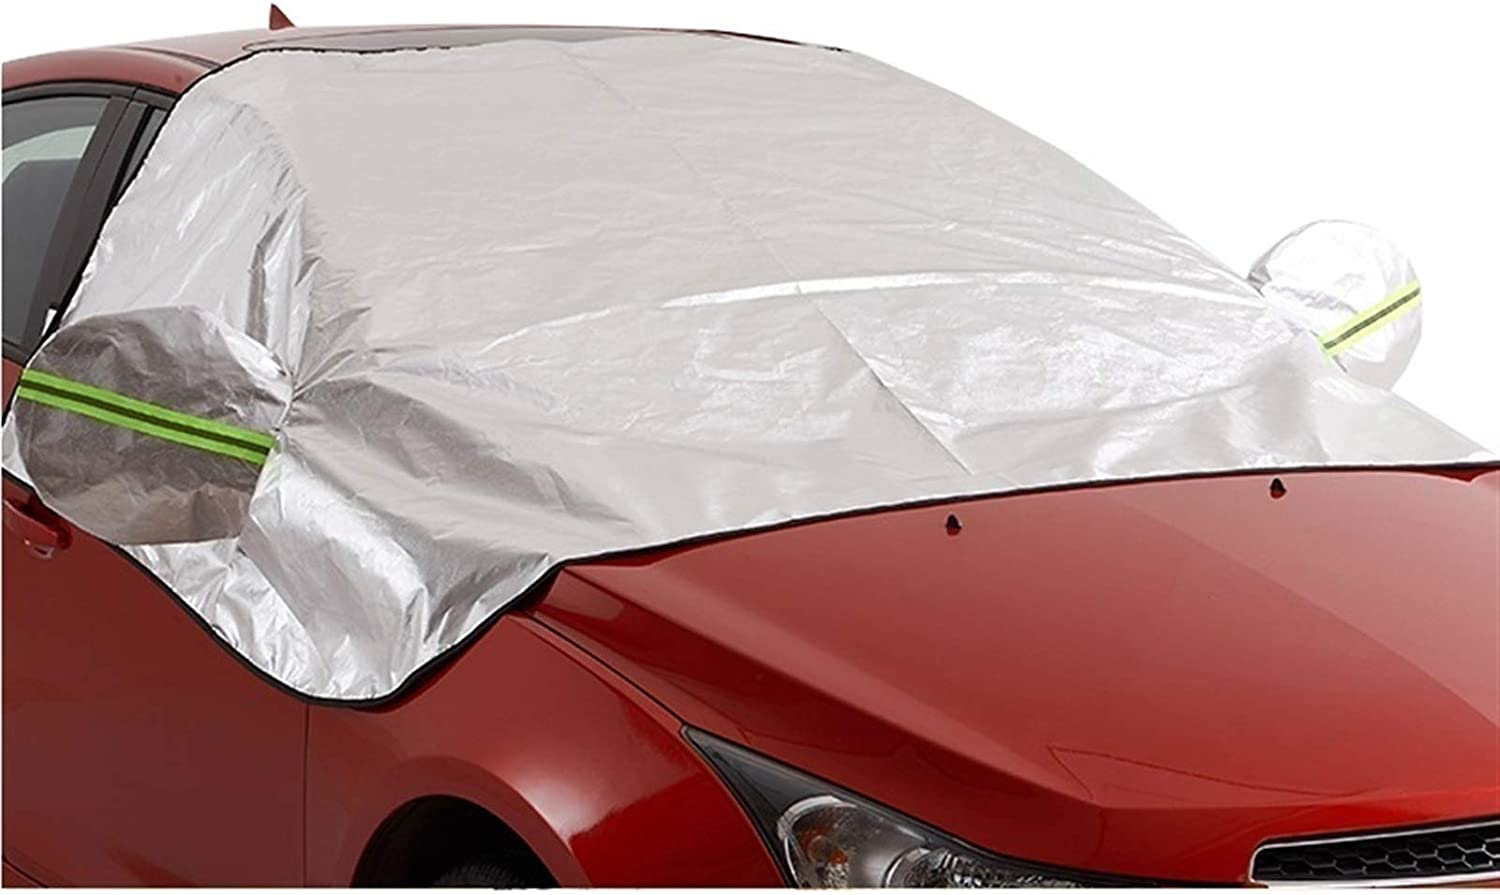 BACKJIA Mail order cheap Car Cover Windshield H Outdoor Waterproof Max 74% OFF Durable